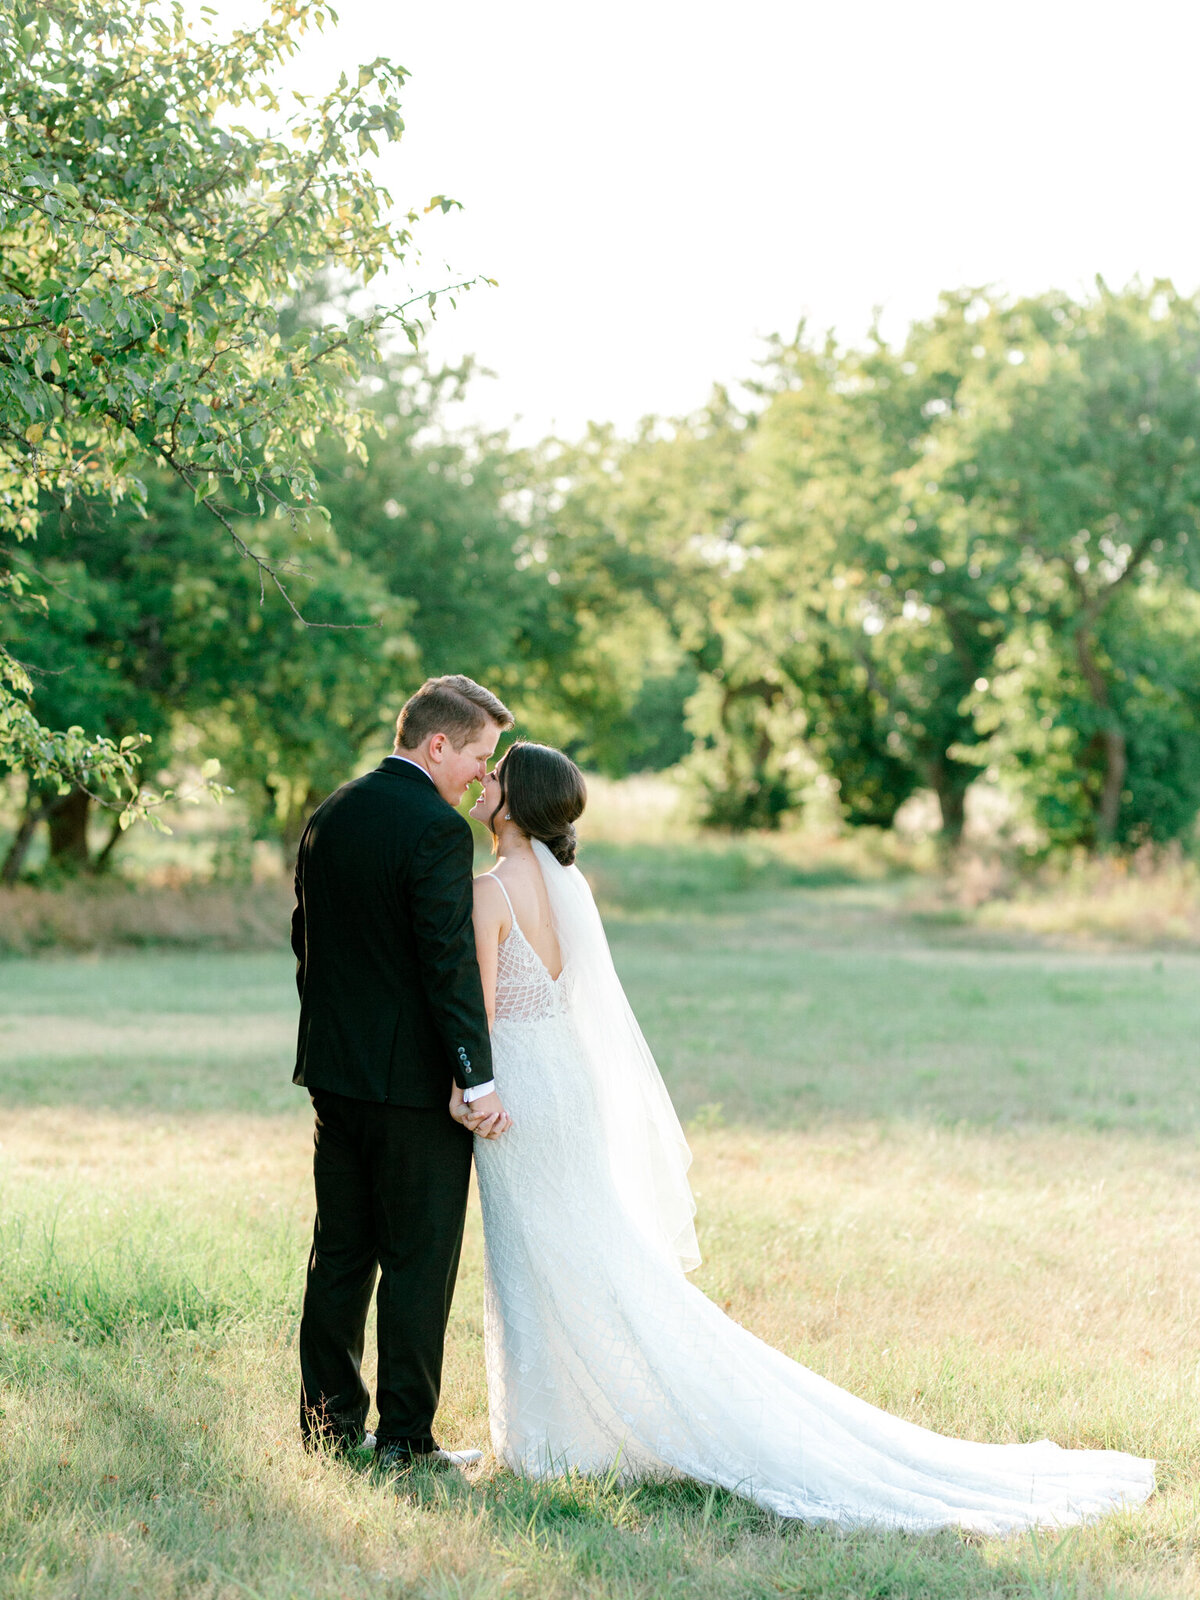 Anna & Billy's Wedding at The Nest at Ruth Farms | Dallas Wedding Photographer | Sami Kathryn Photography-8